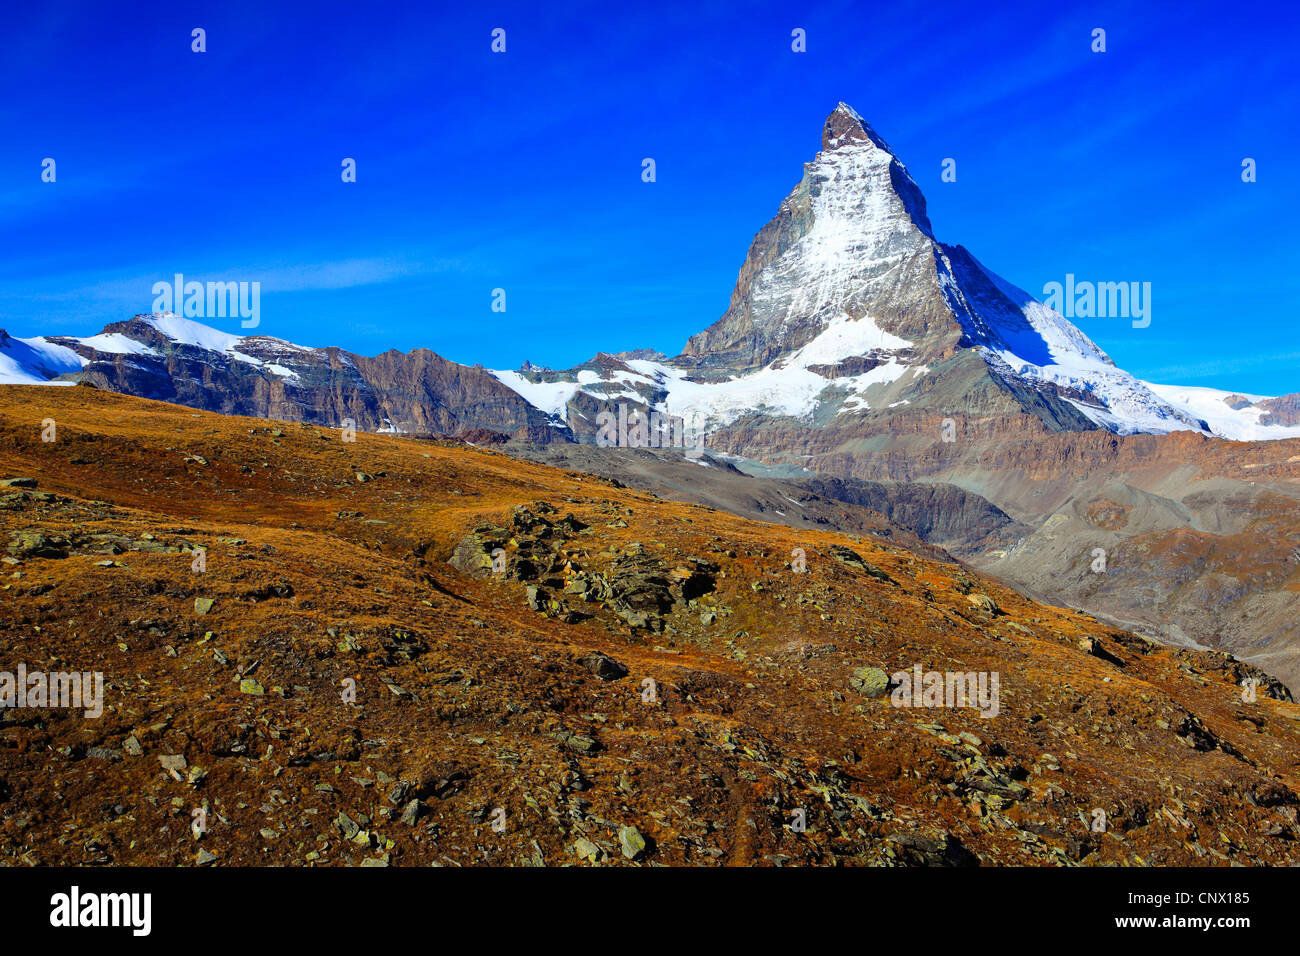 view at the matterhorn from mountain slope with blueberry bushes